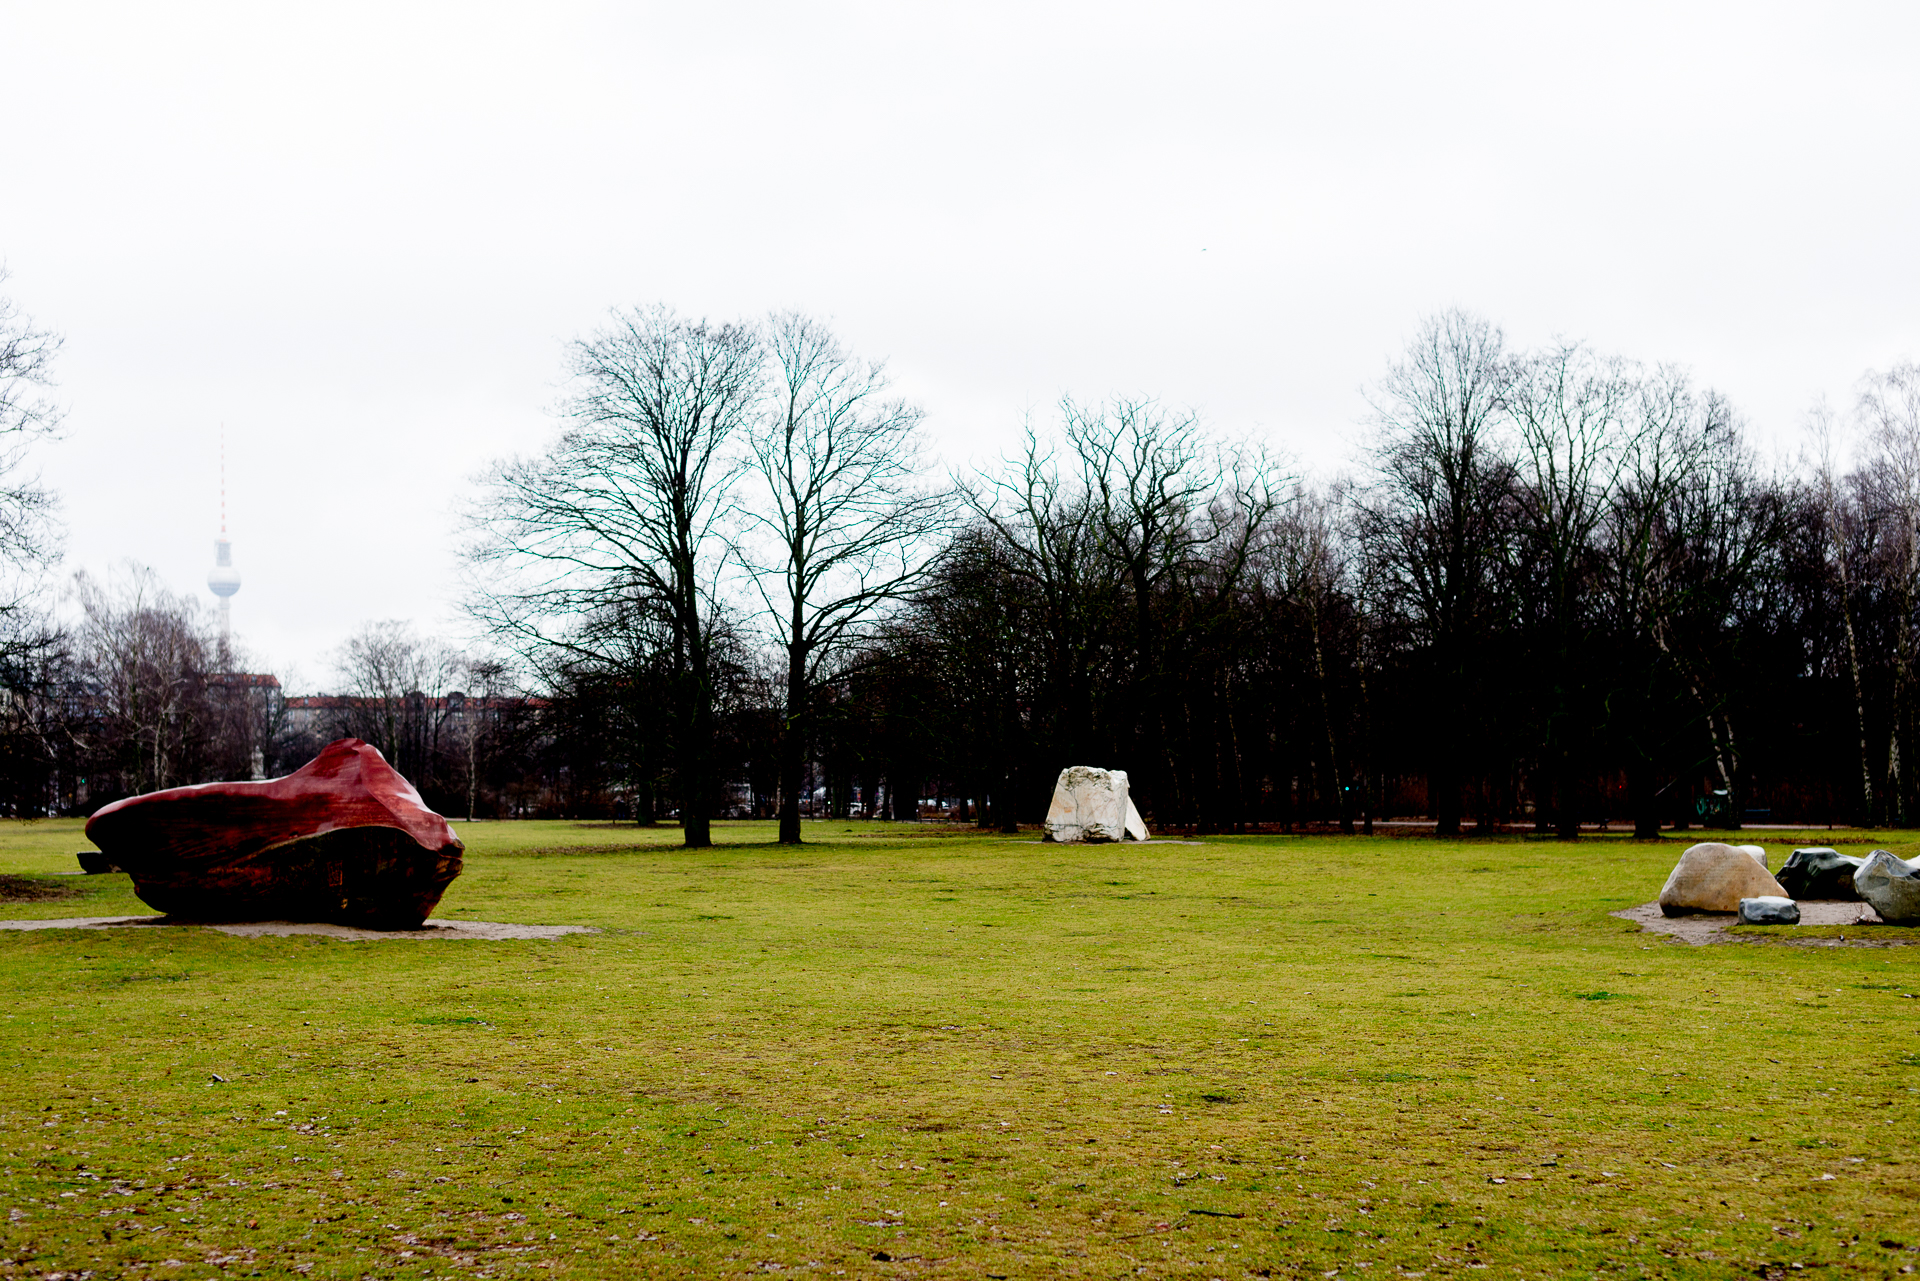 Open green field with massive boulders decorating the middle of Tiergarten Park in Berlin, Germany